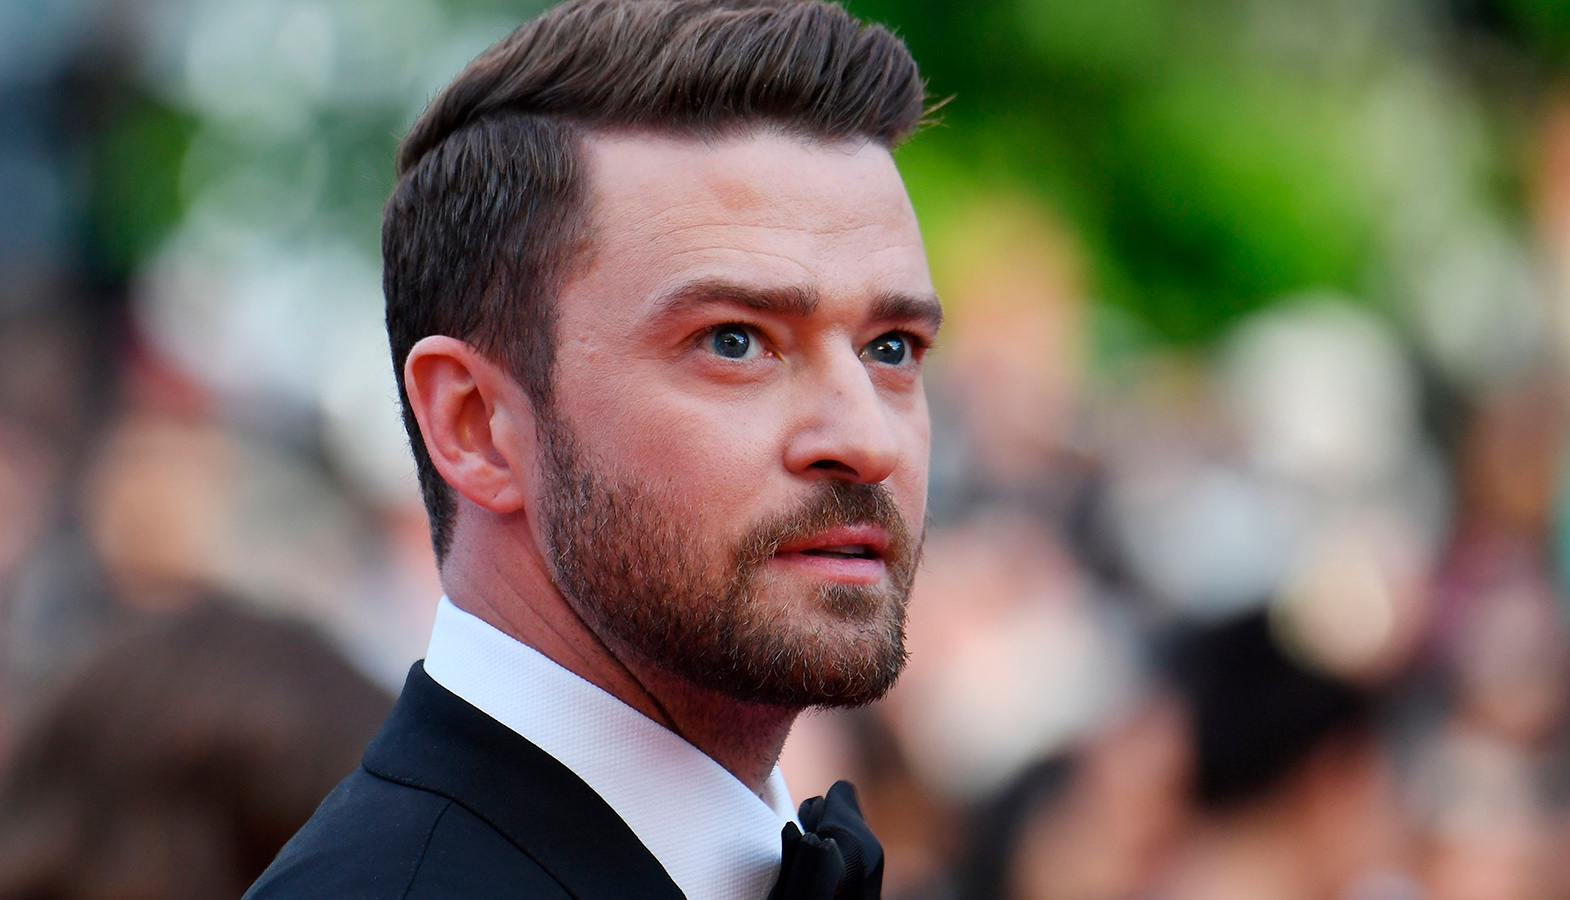 Justin Timberlake And Jessica Biel Have A Son